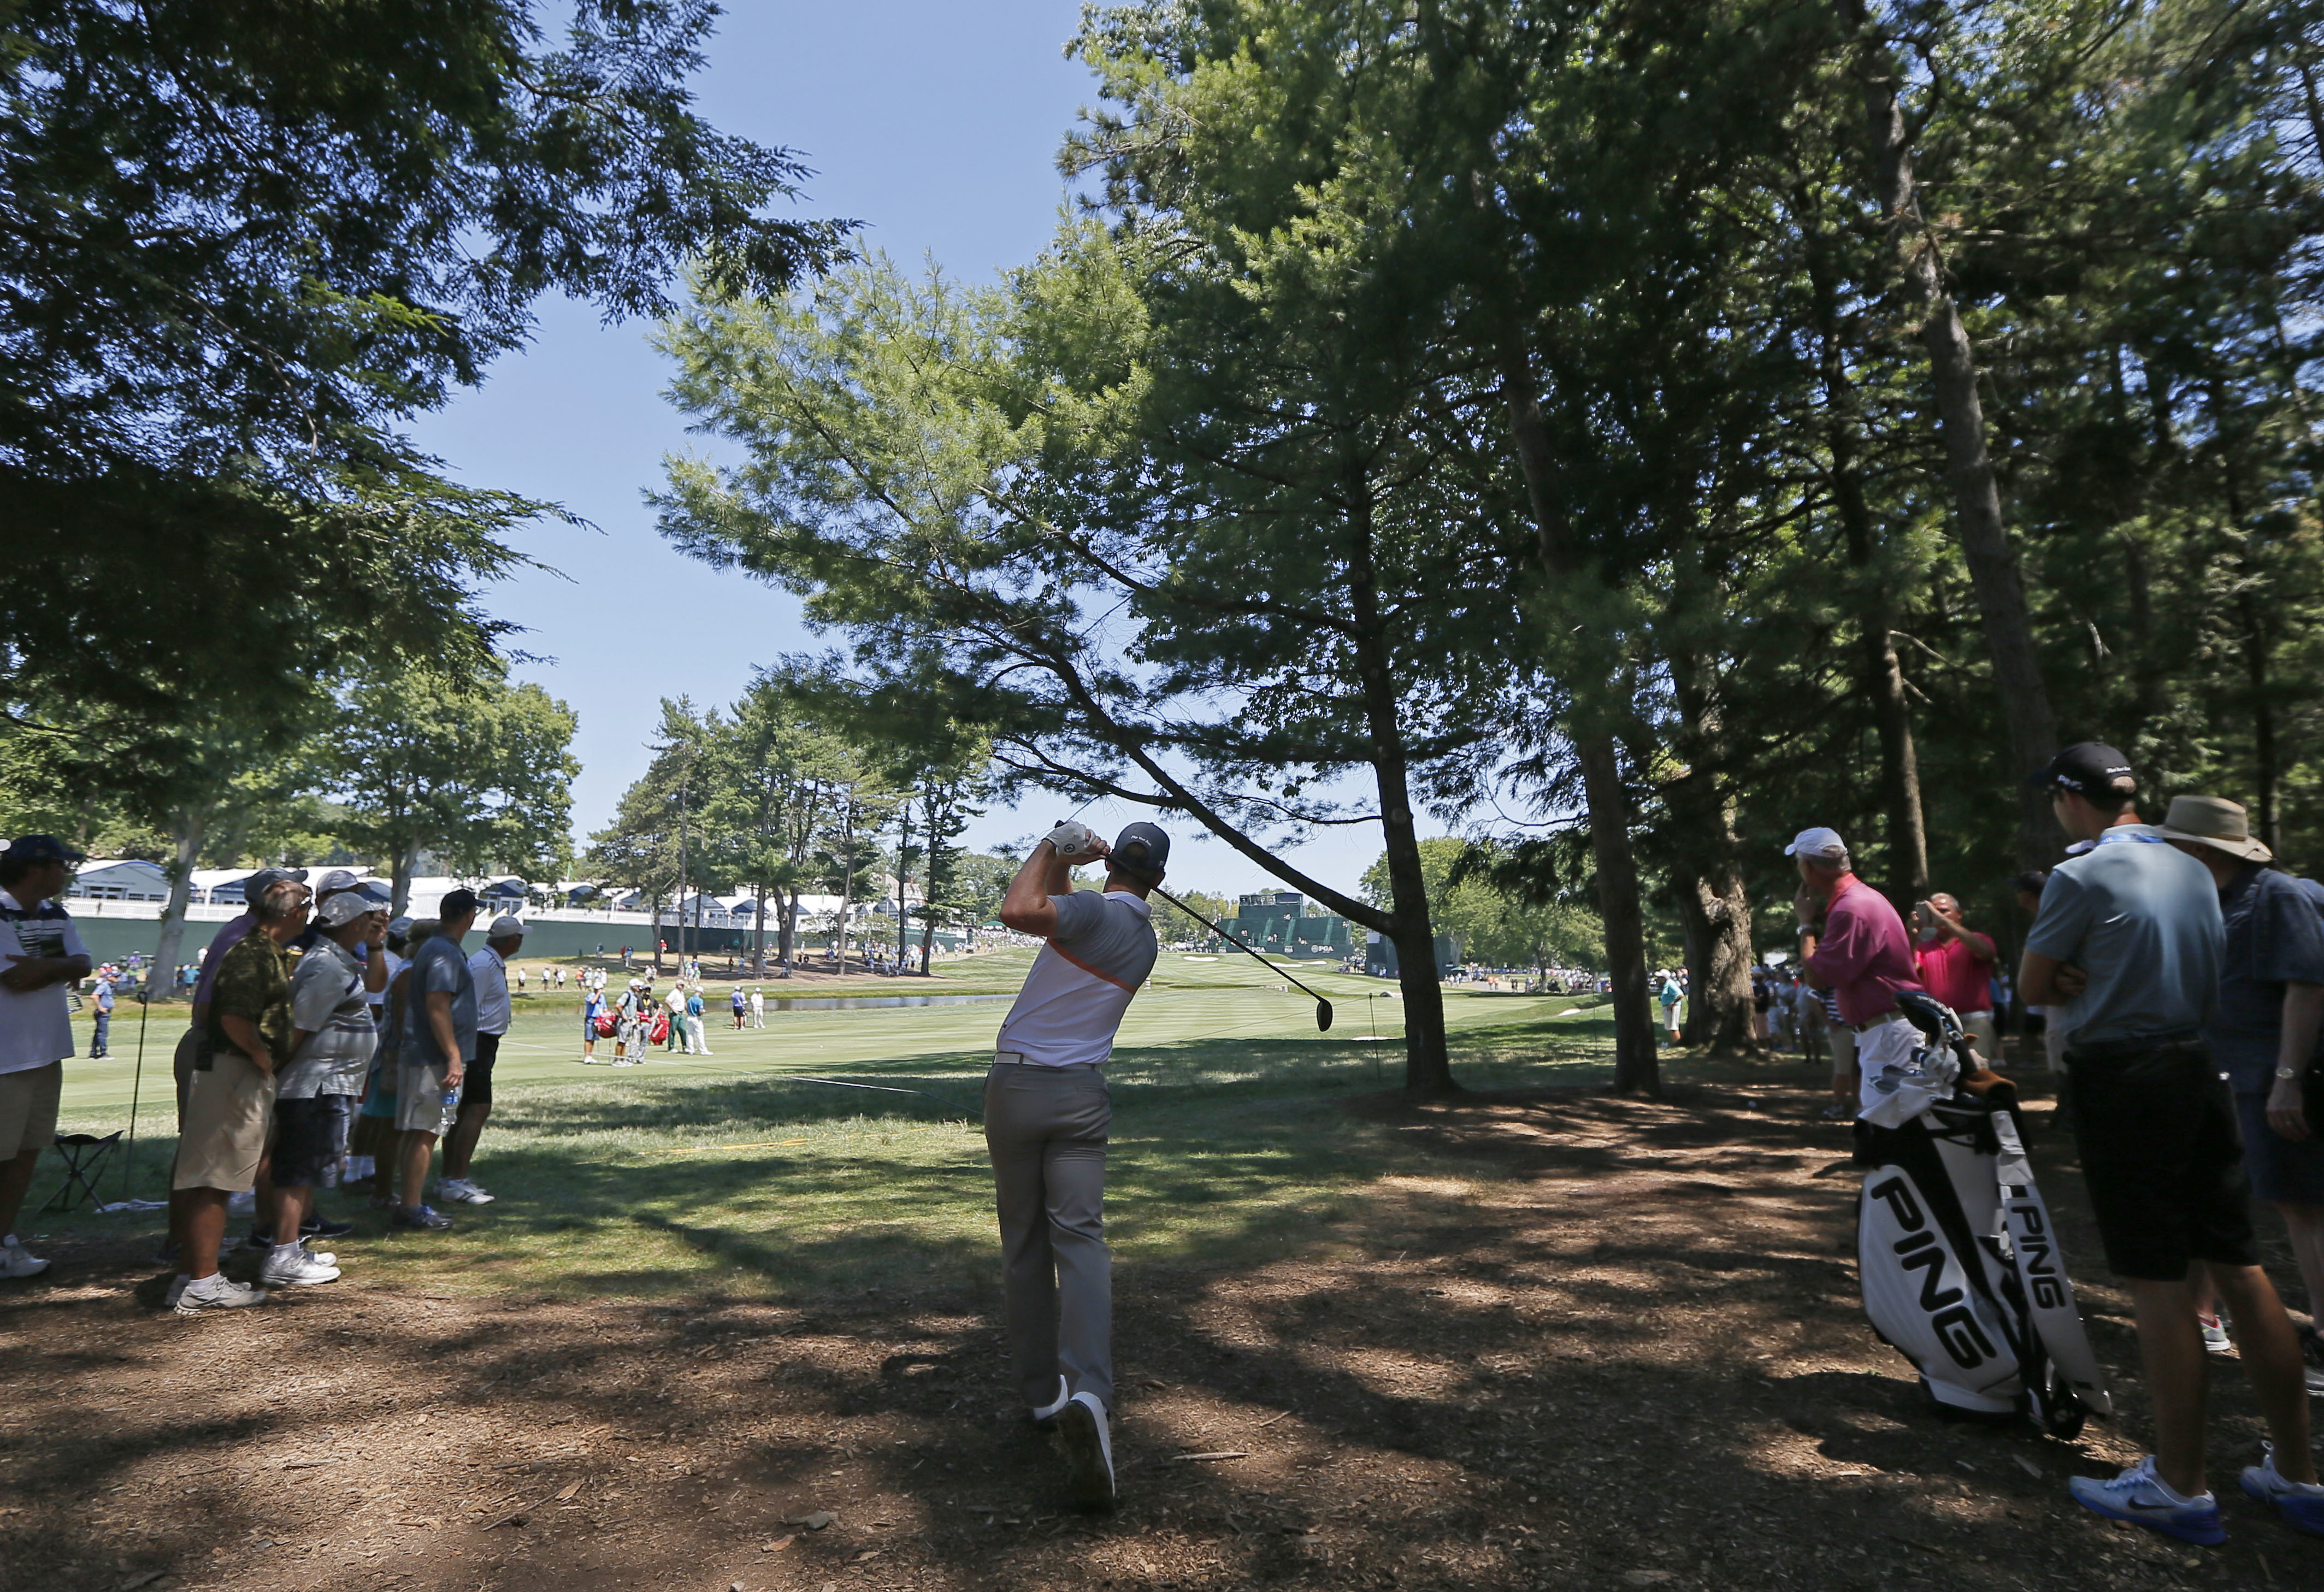 Brandon Stone, of South Africa, hits from the rough on the 18th hole during a practice round for the PGA Championship golf tournament at Baltusrol Golf Club in Springfield, N.J., Wednesday, July 27, 2016. (AP Photo/Tony Gutierrez)